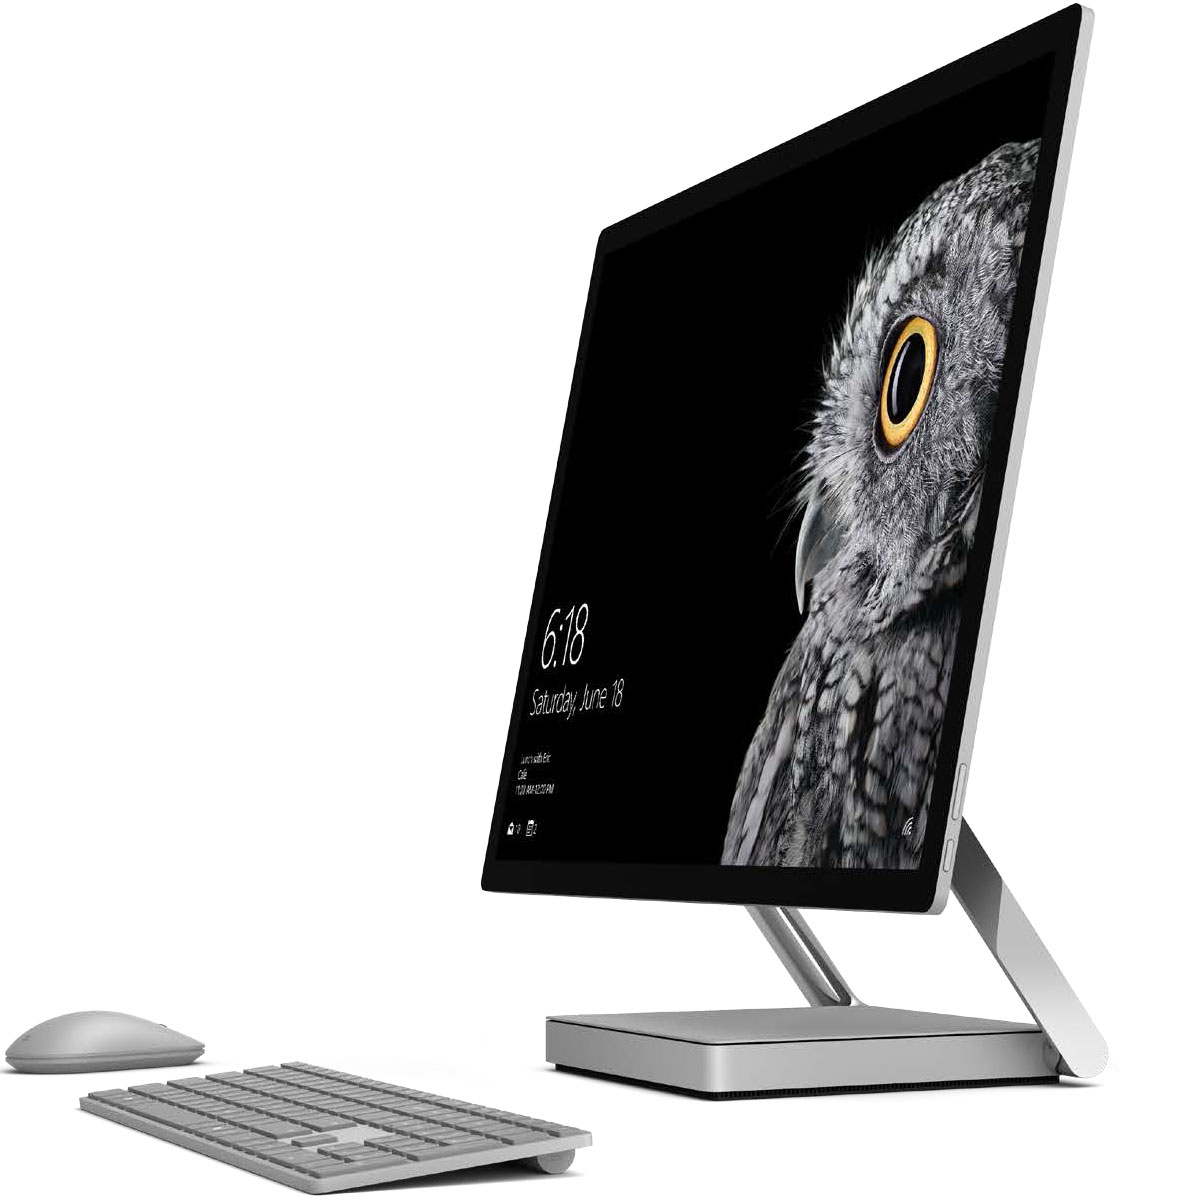 Microsoft Surface Studio - All-In-One PC Microsoft - Cybertek.fr - 5